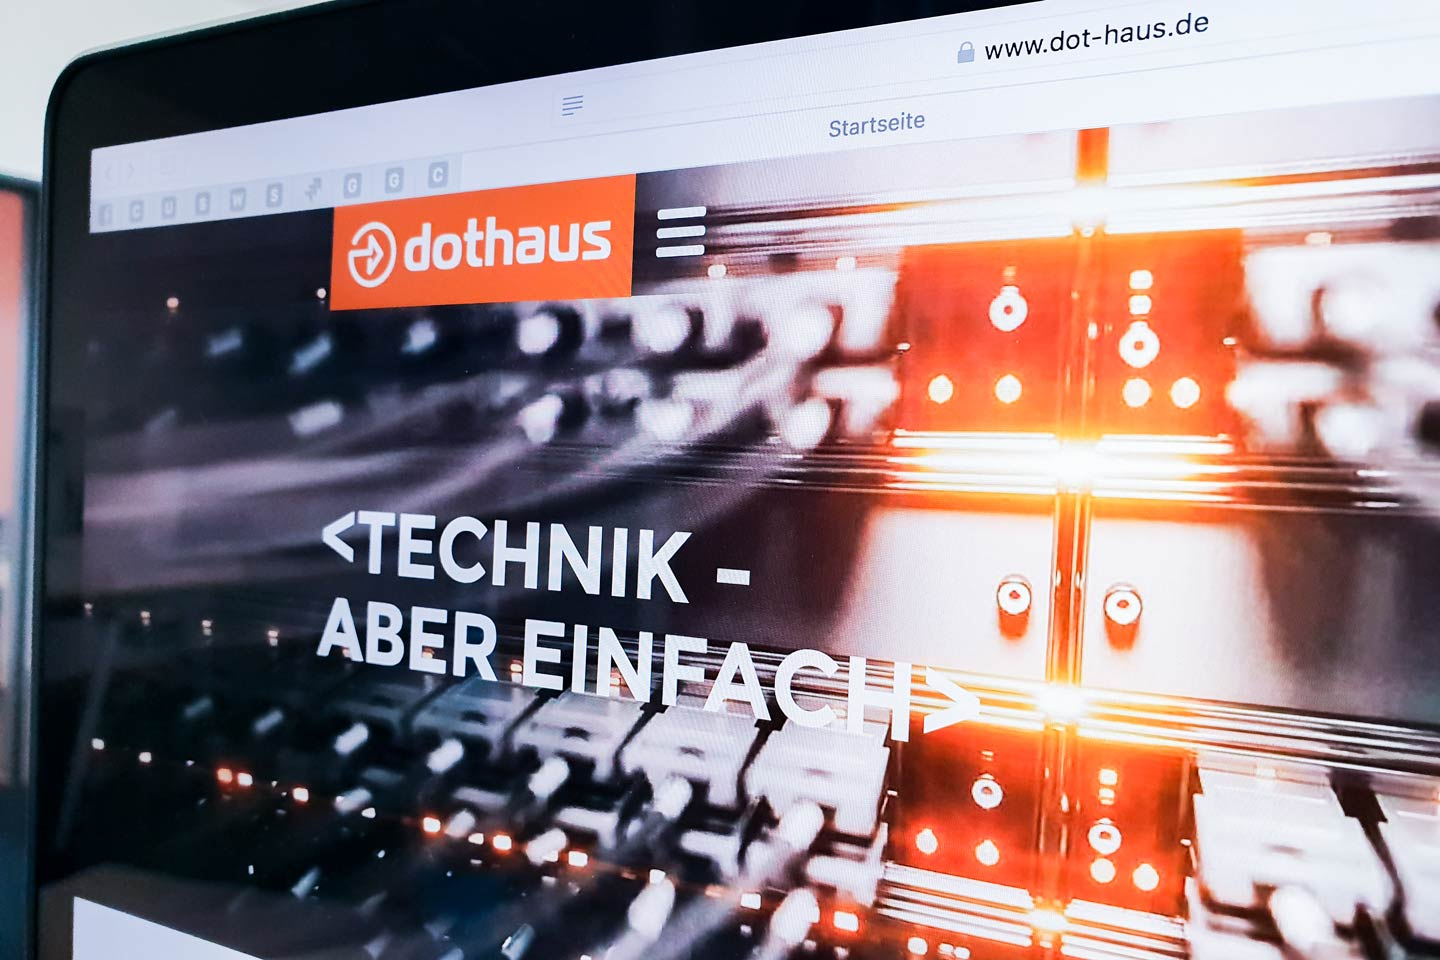 dot.haus-Website auf Laptop